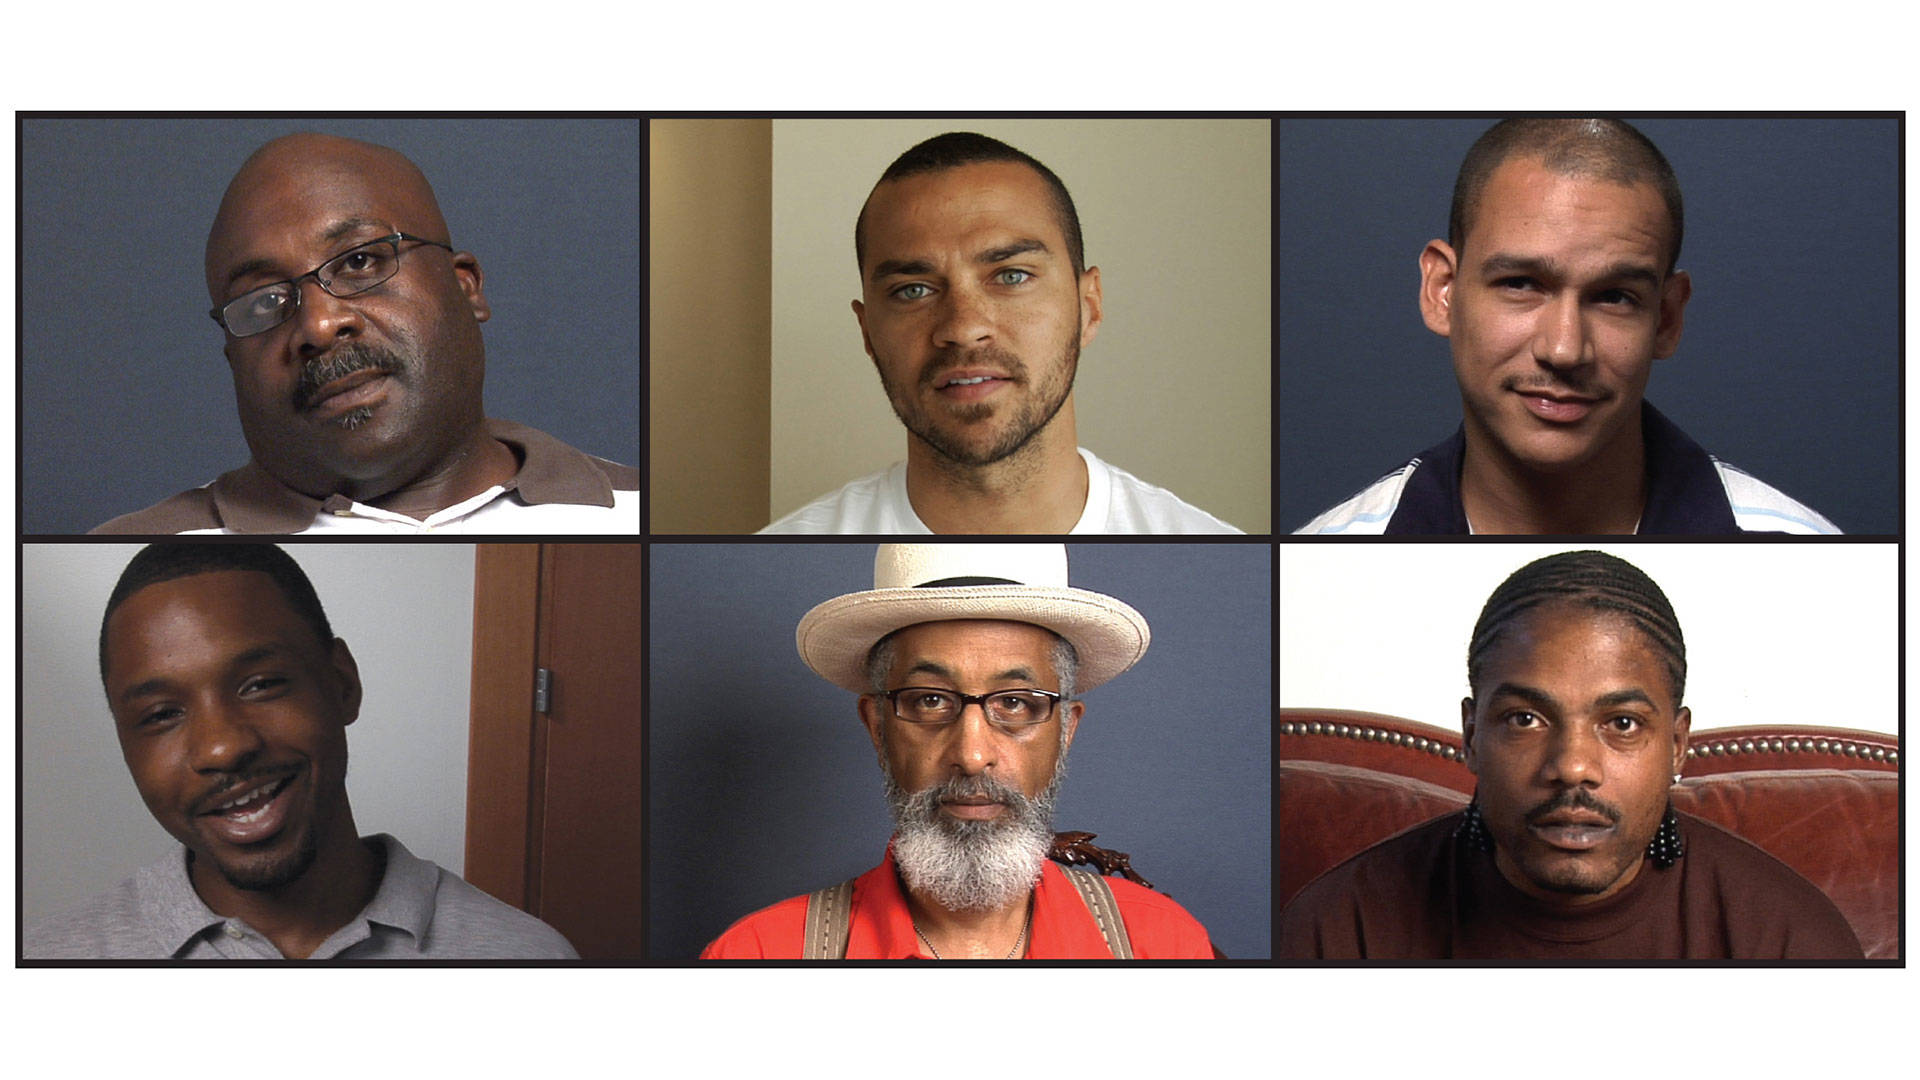 A still from Question Bridge: Black Males, created by Chris Johnson, Hank Willis Thomas, Bayete Ross Smith, and Kamal Sinclair. Courtesy Oakland Museum of California